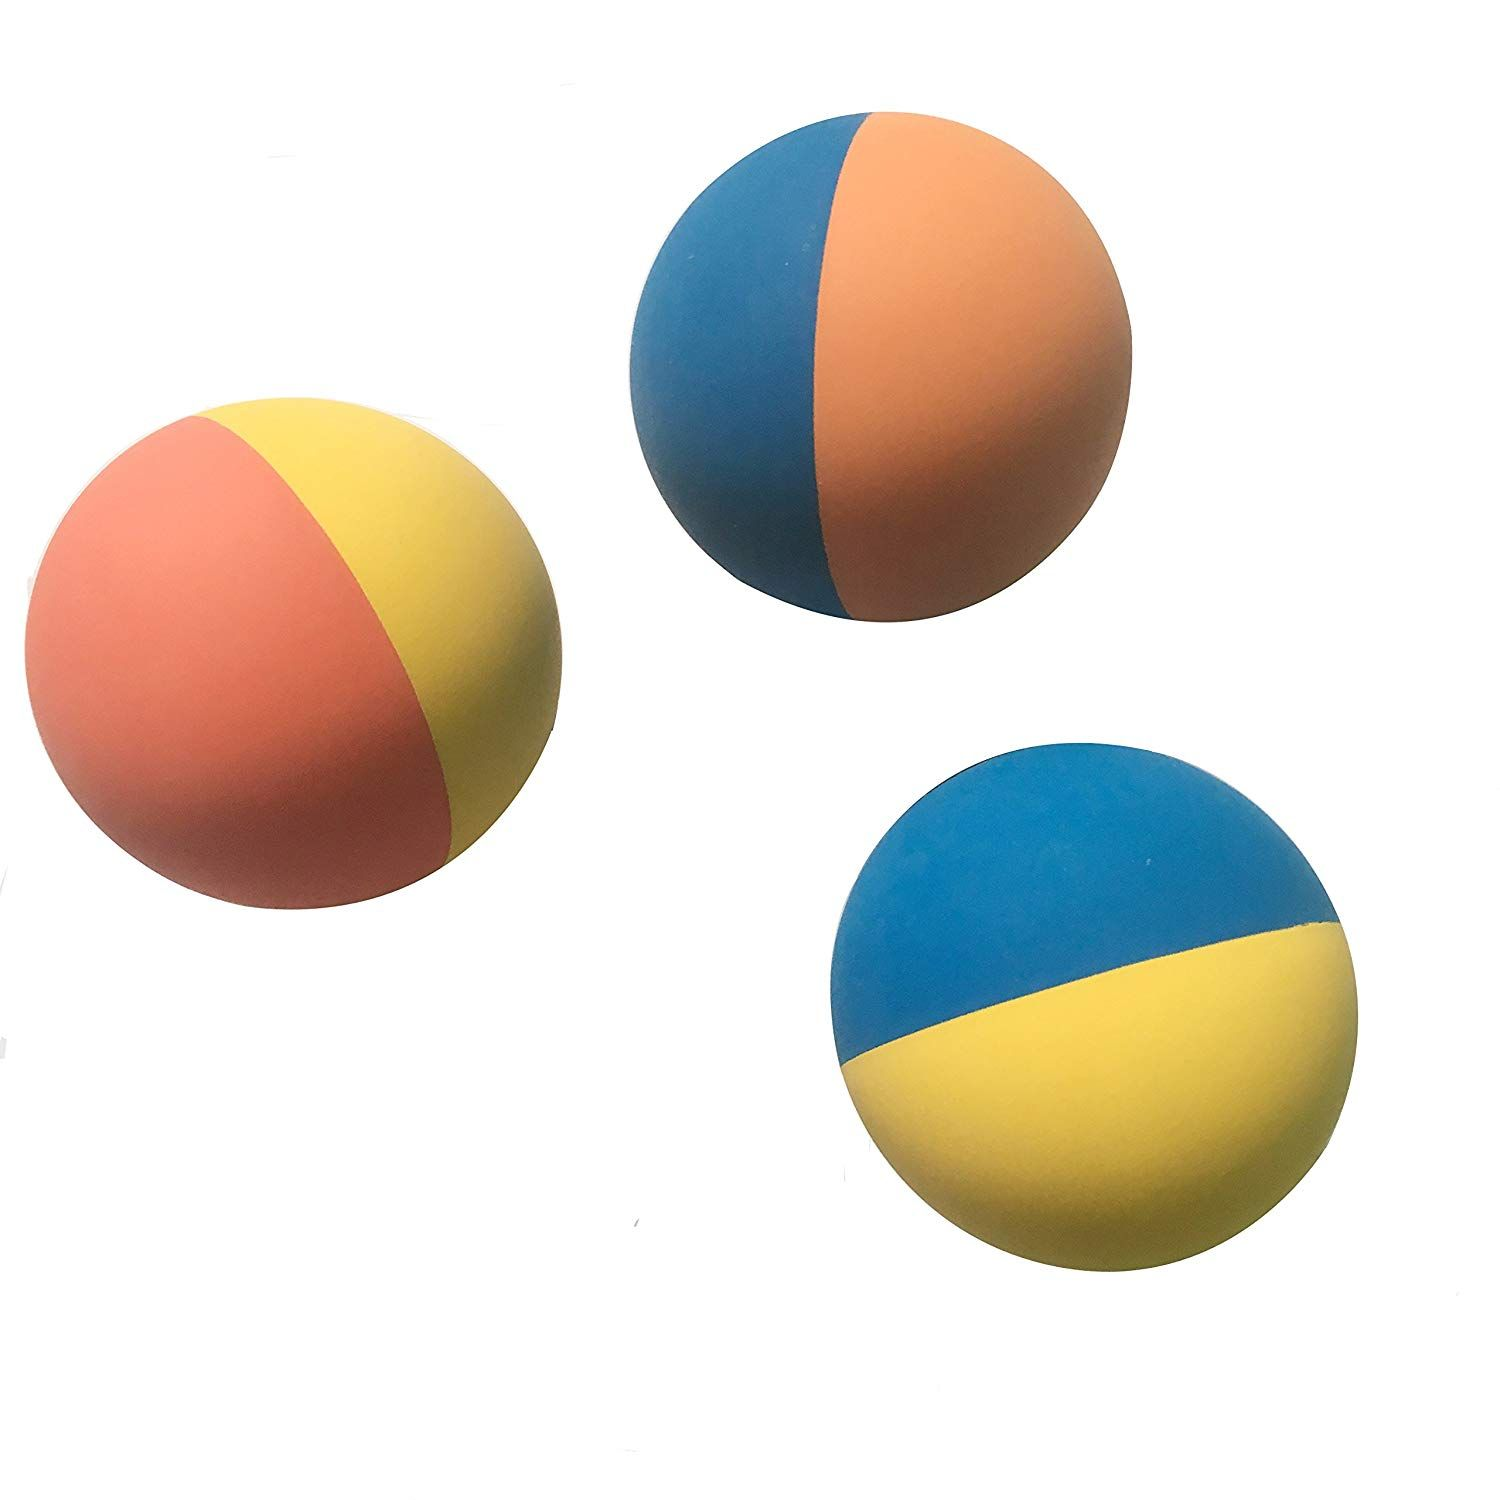 Weierfu Rubber Fetch Ball For Small Dogs Super Bouncy Dog Rubber Ball Premium Pet Toys For Training 3 Pack Details Can Be Found By Pet Toys Dog Ball Ball